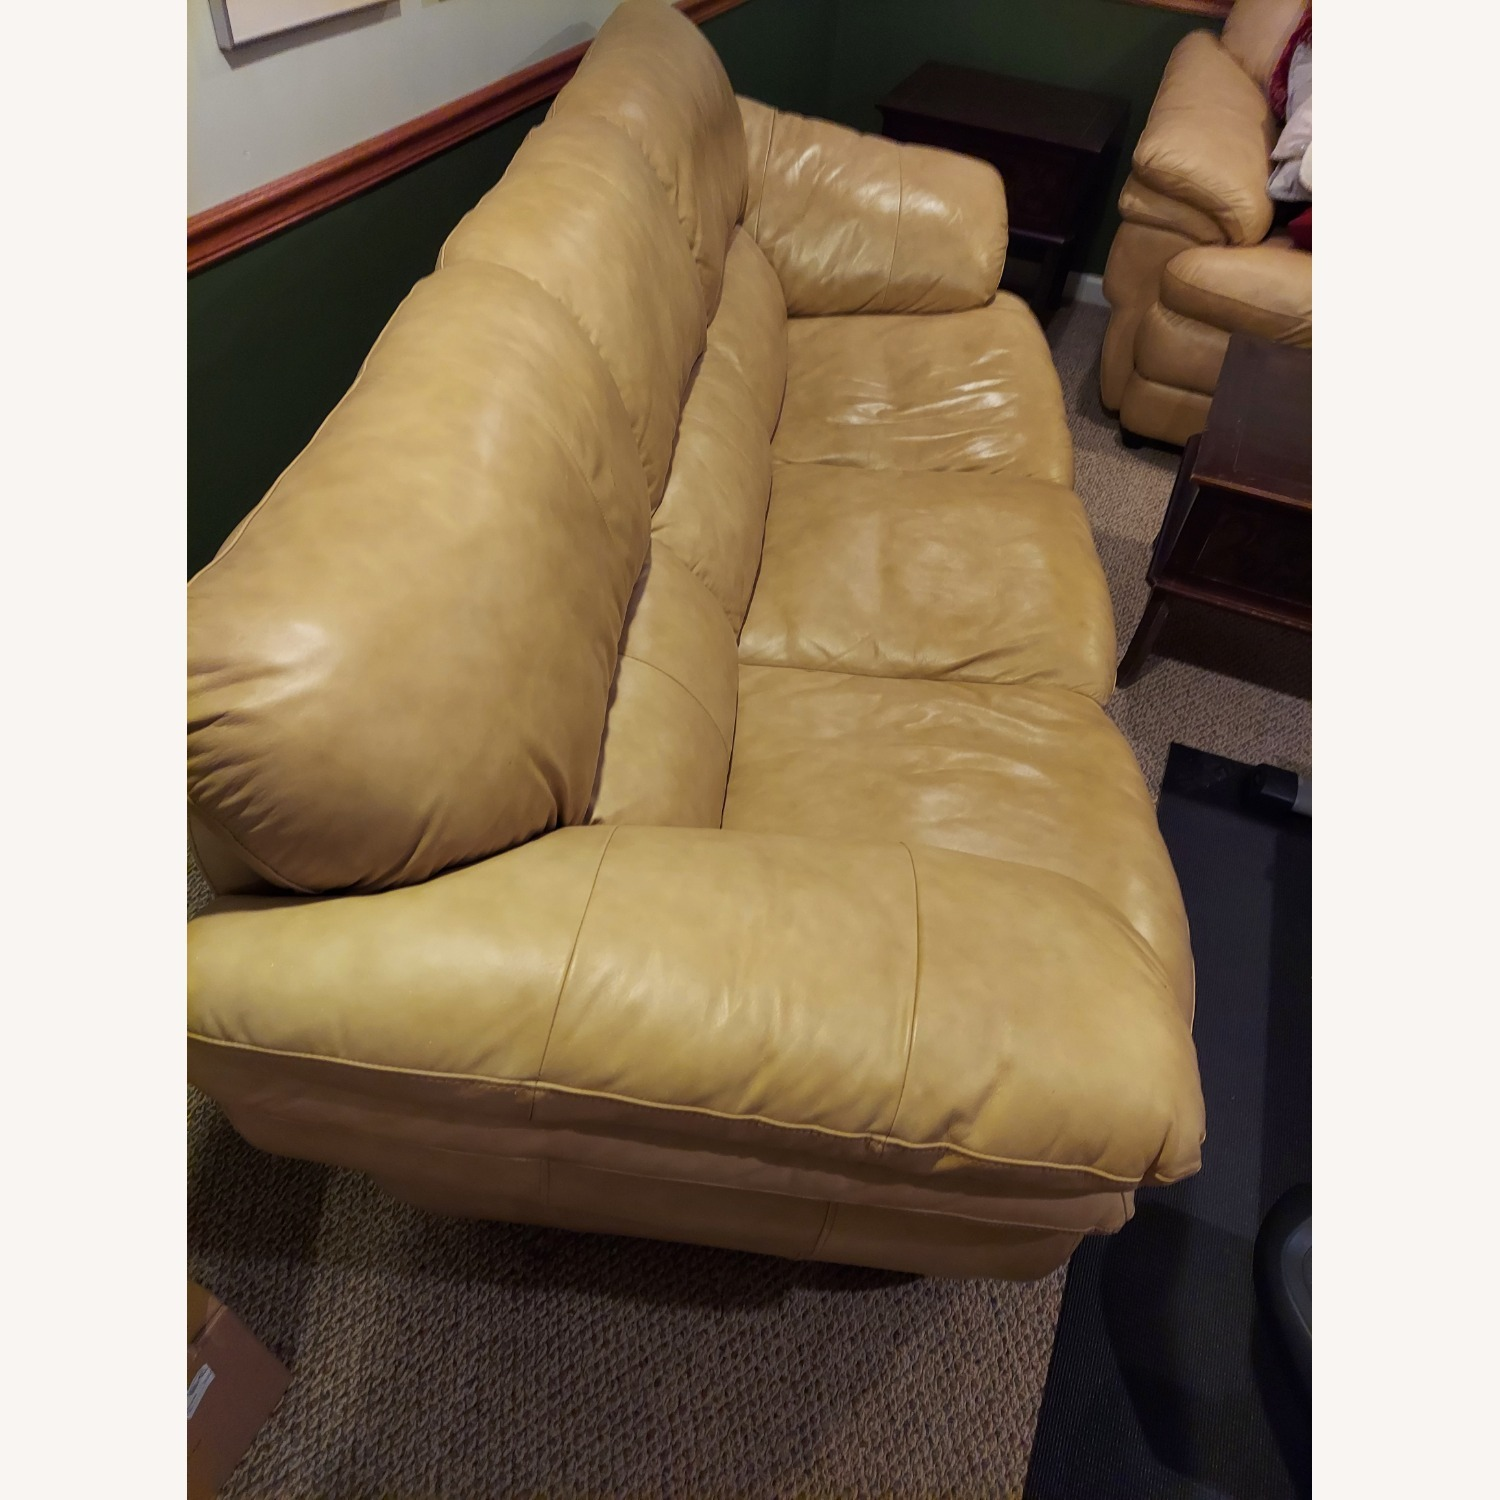 Bob's Discount Natural Bonded Leather 3 Seater Sofa - image-5